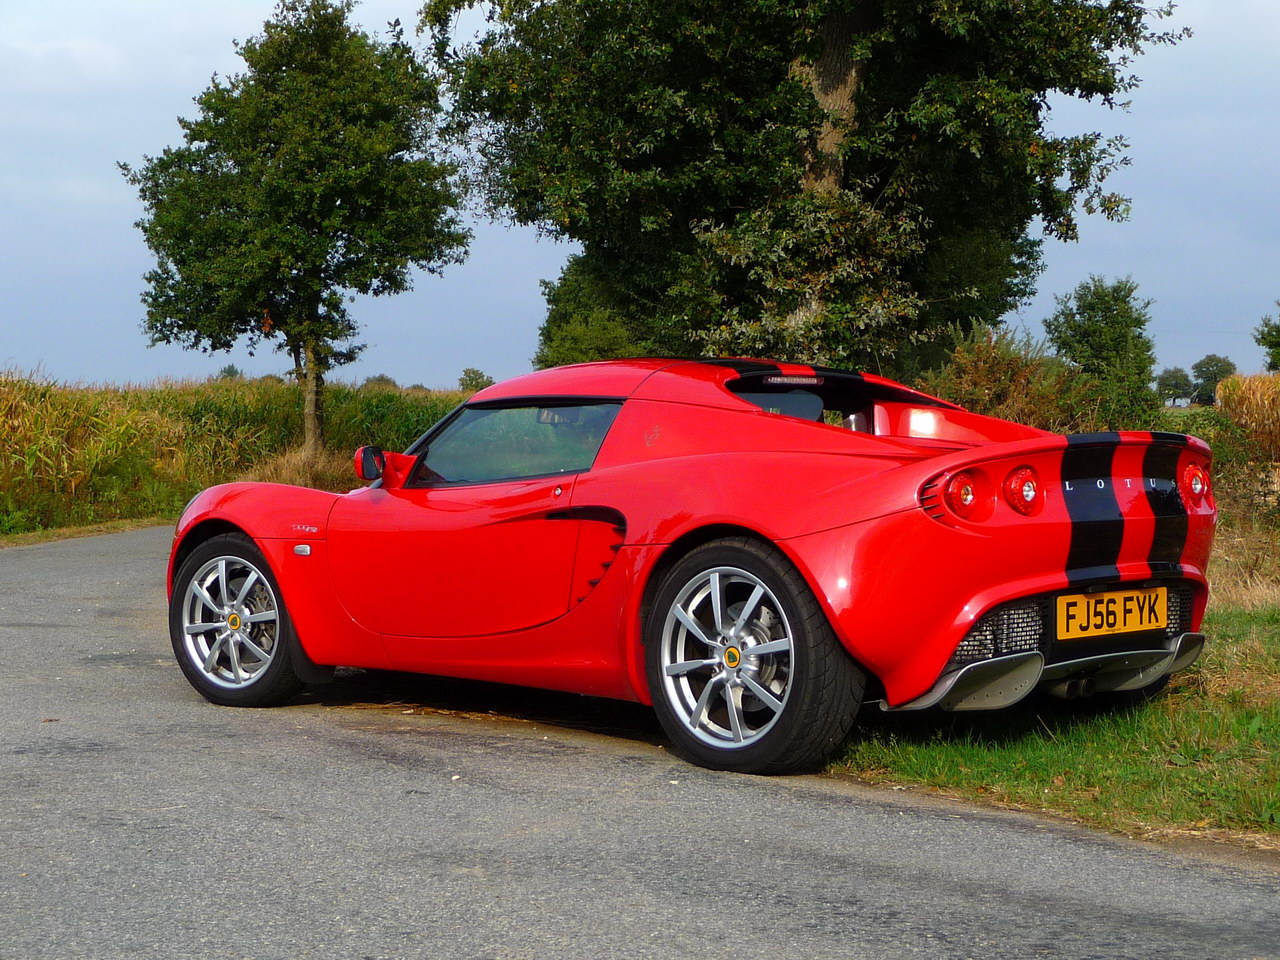 annonce vente occasion lotus elise s2 111r ardent red video elise british. Black Bedroom Furniture Sets. Home Design Ideas